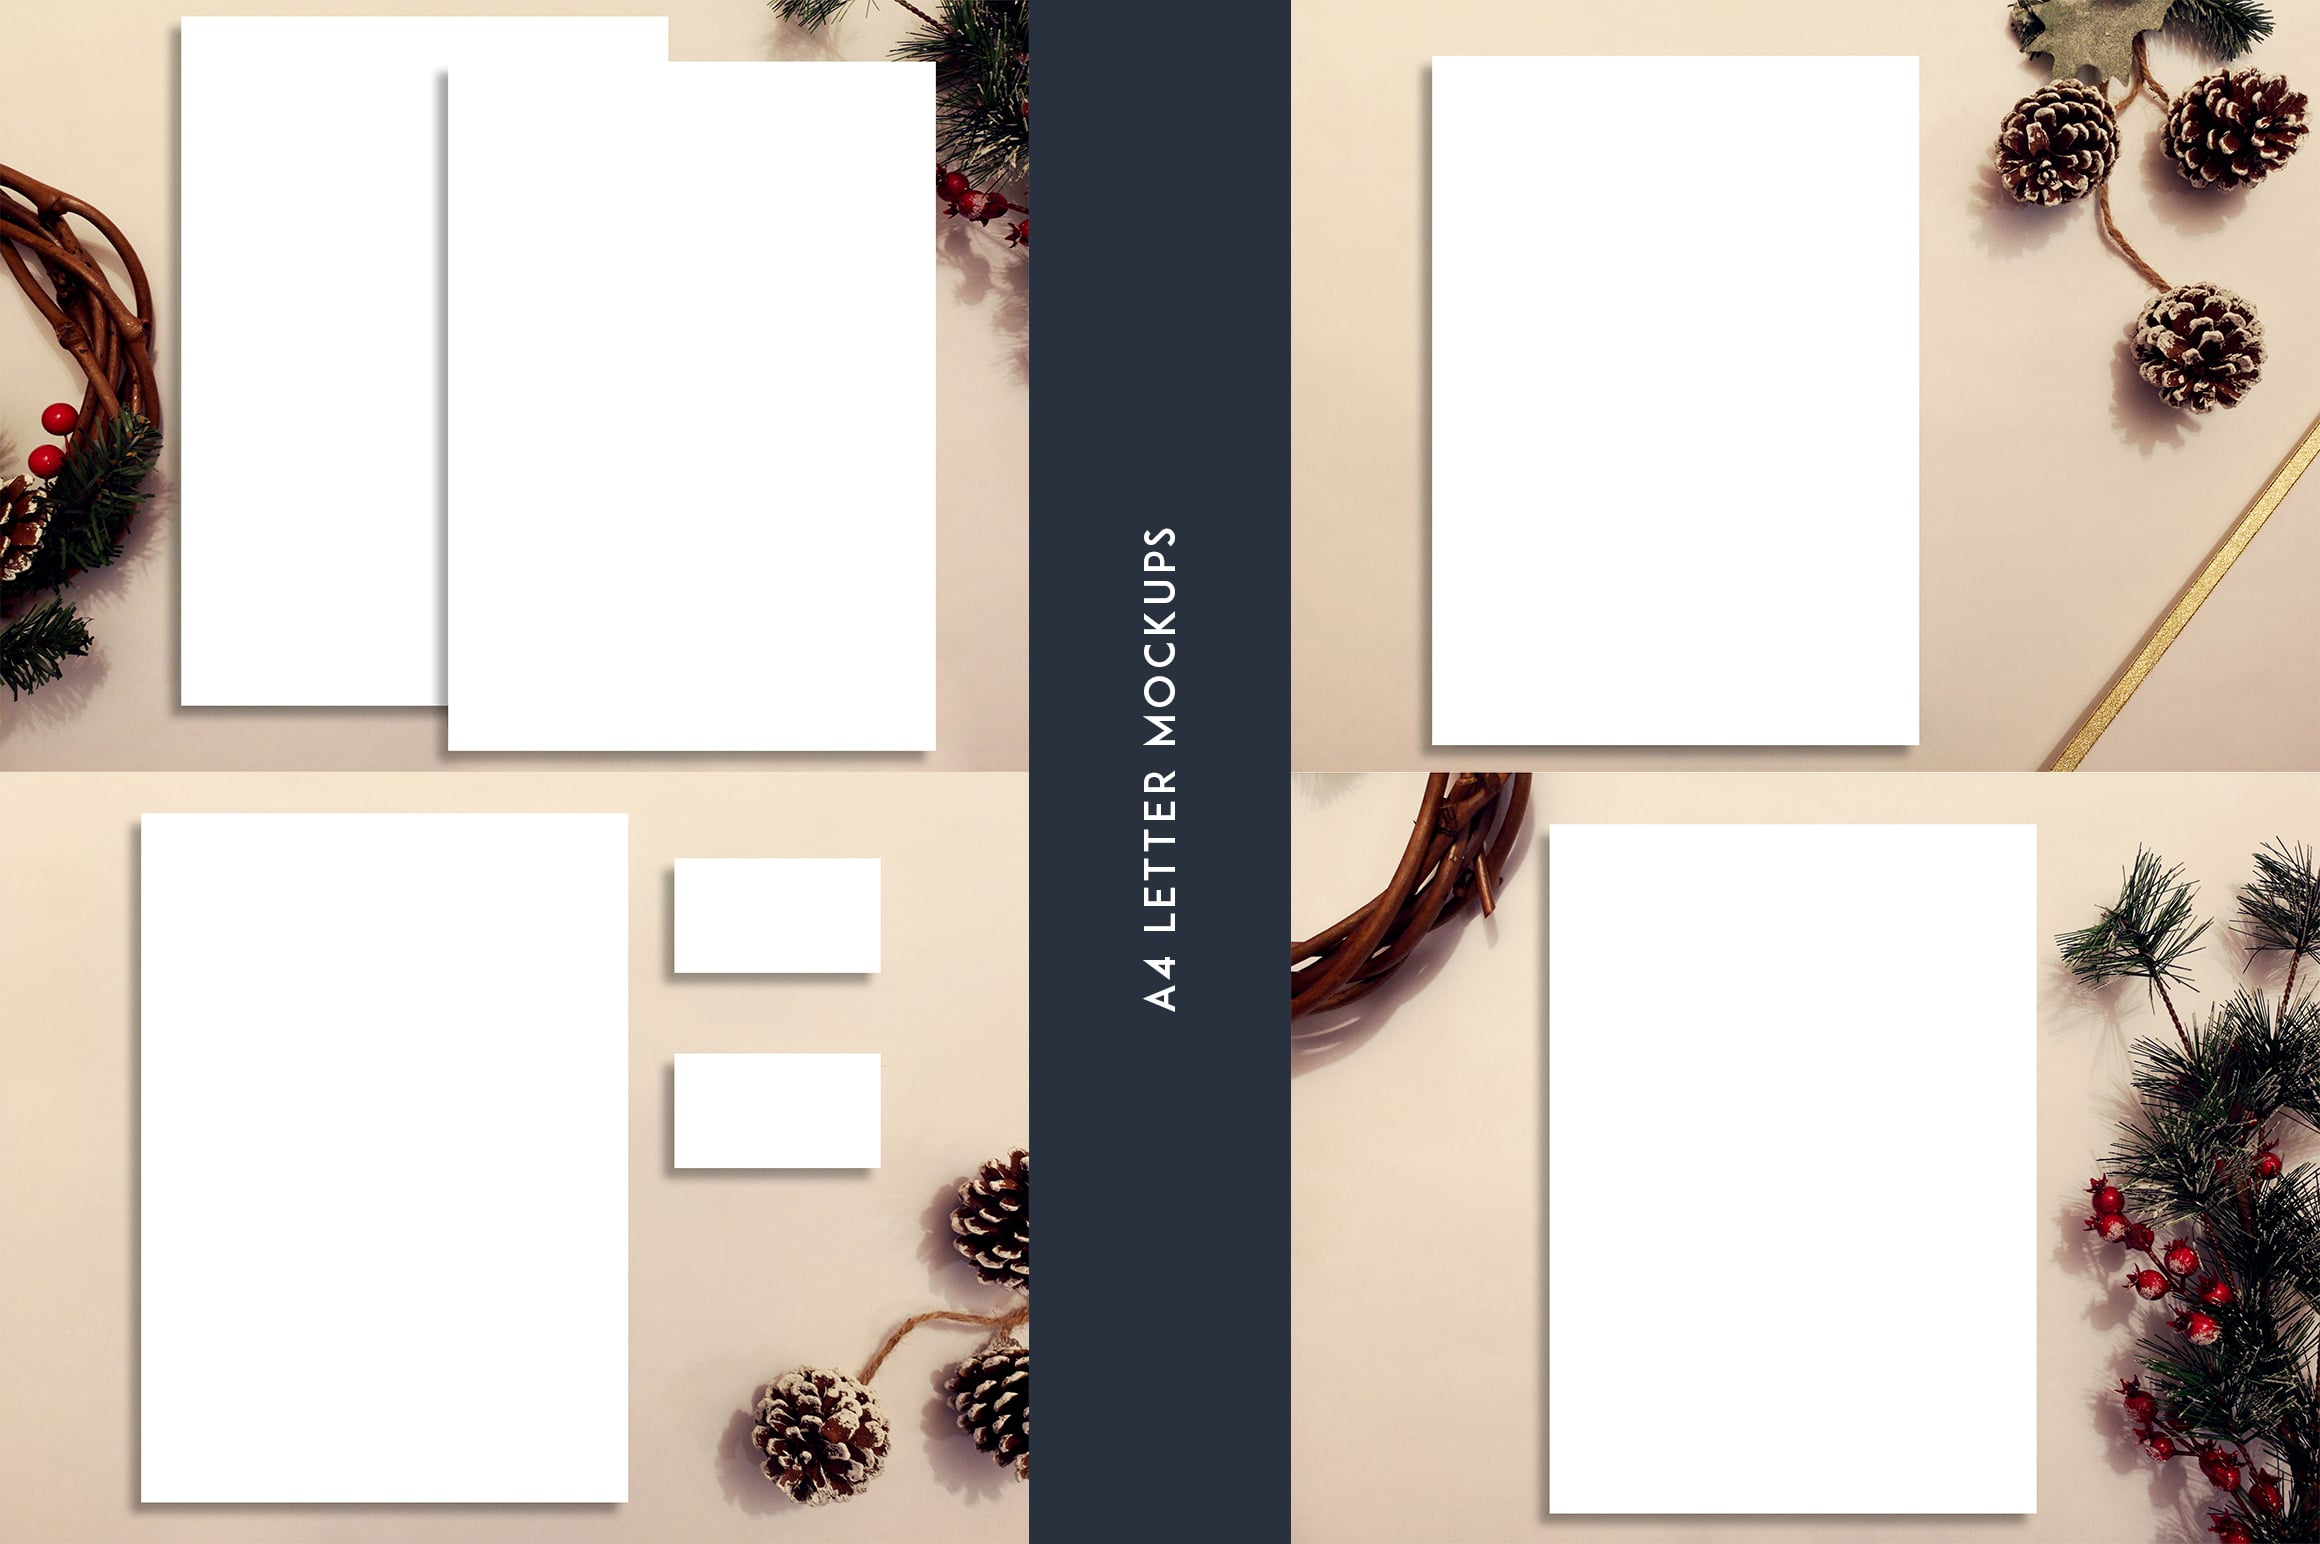 12 Christmas Mockups + Backgrounds - $9 ONLY - 2 4